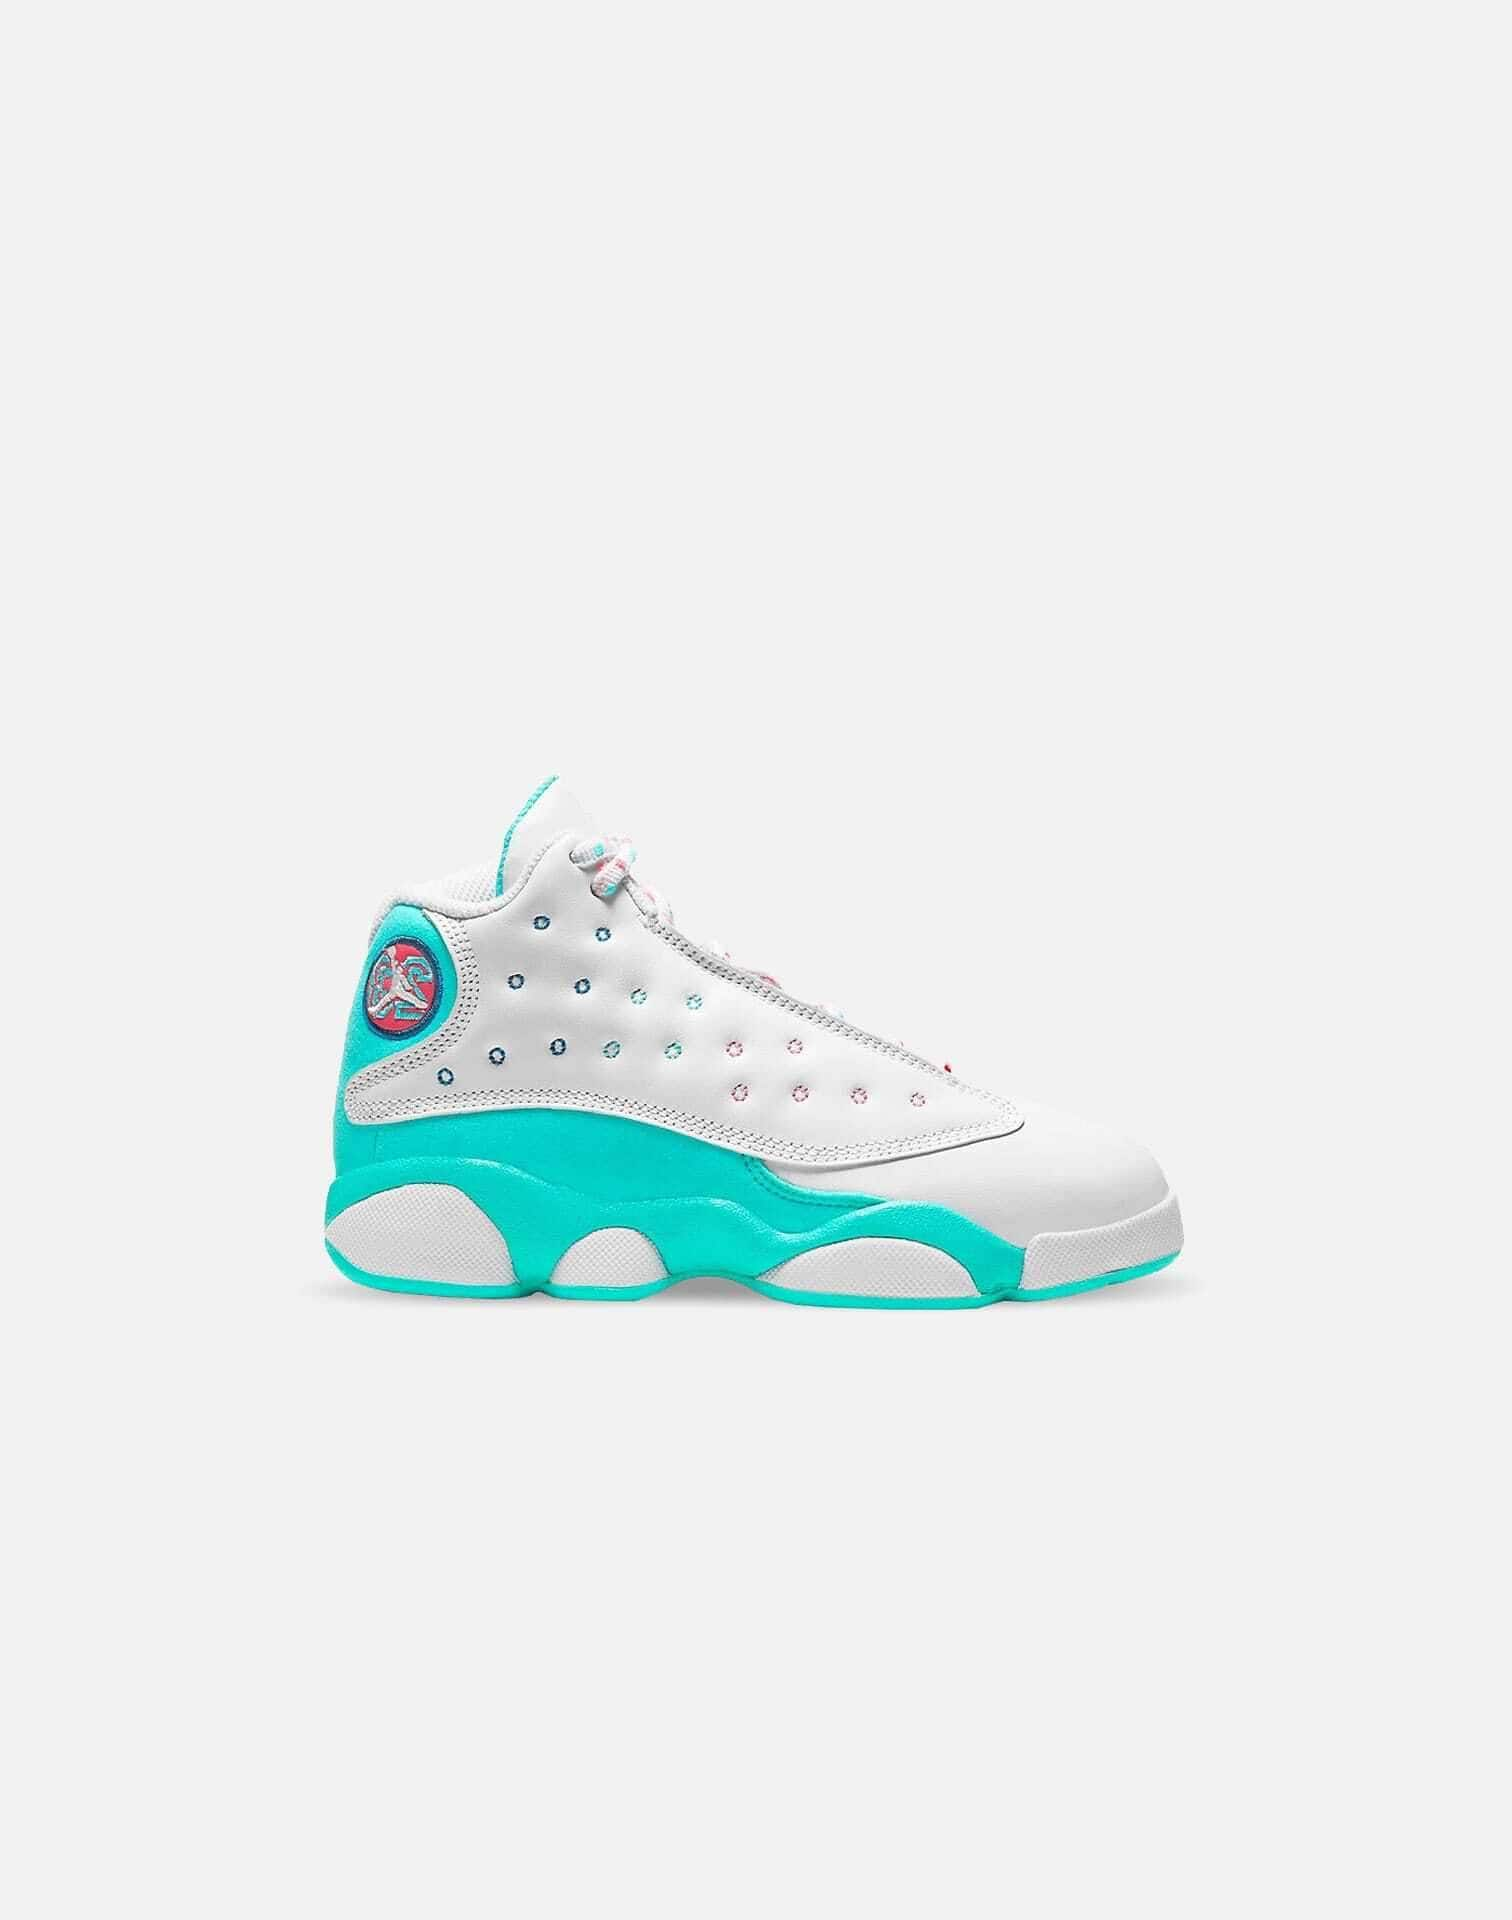 air jordan 13 aurora green shirt